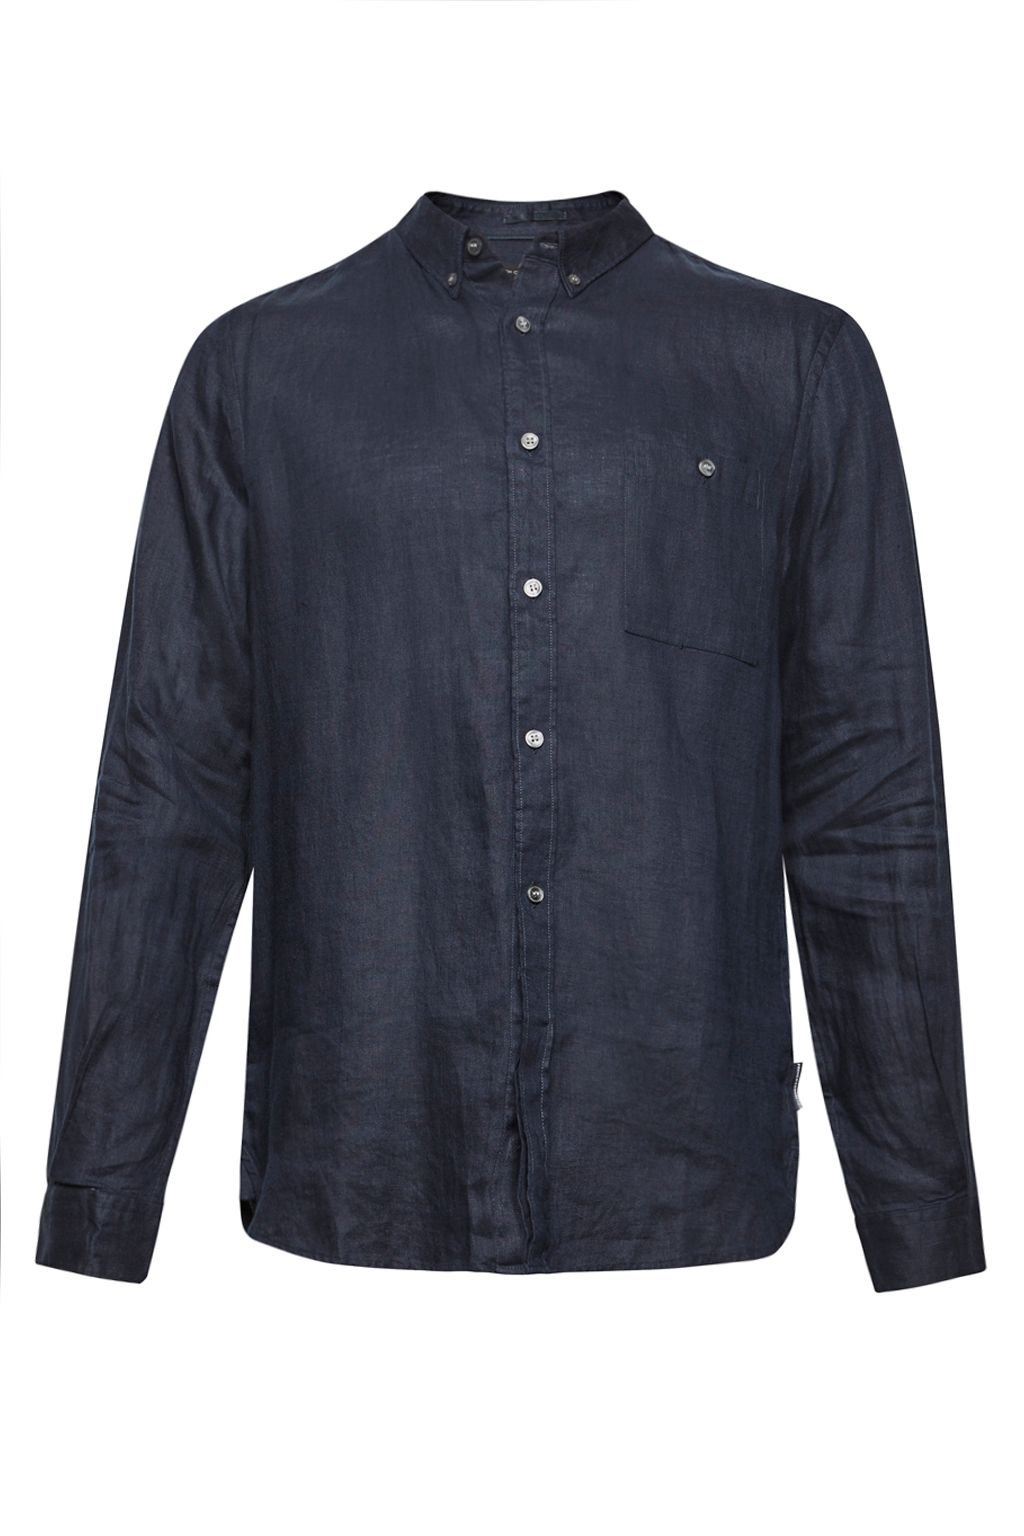 Mens French Connection Summer Linen Shirt Navy